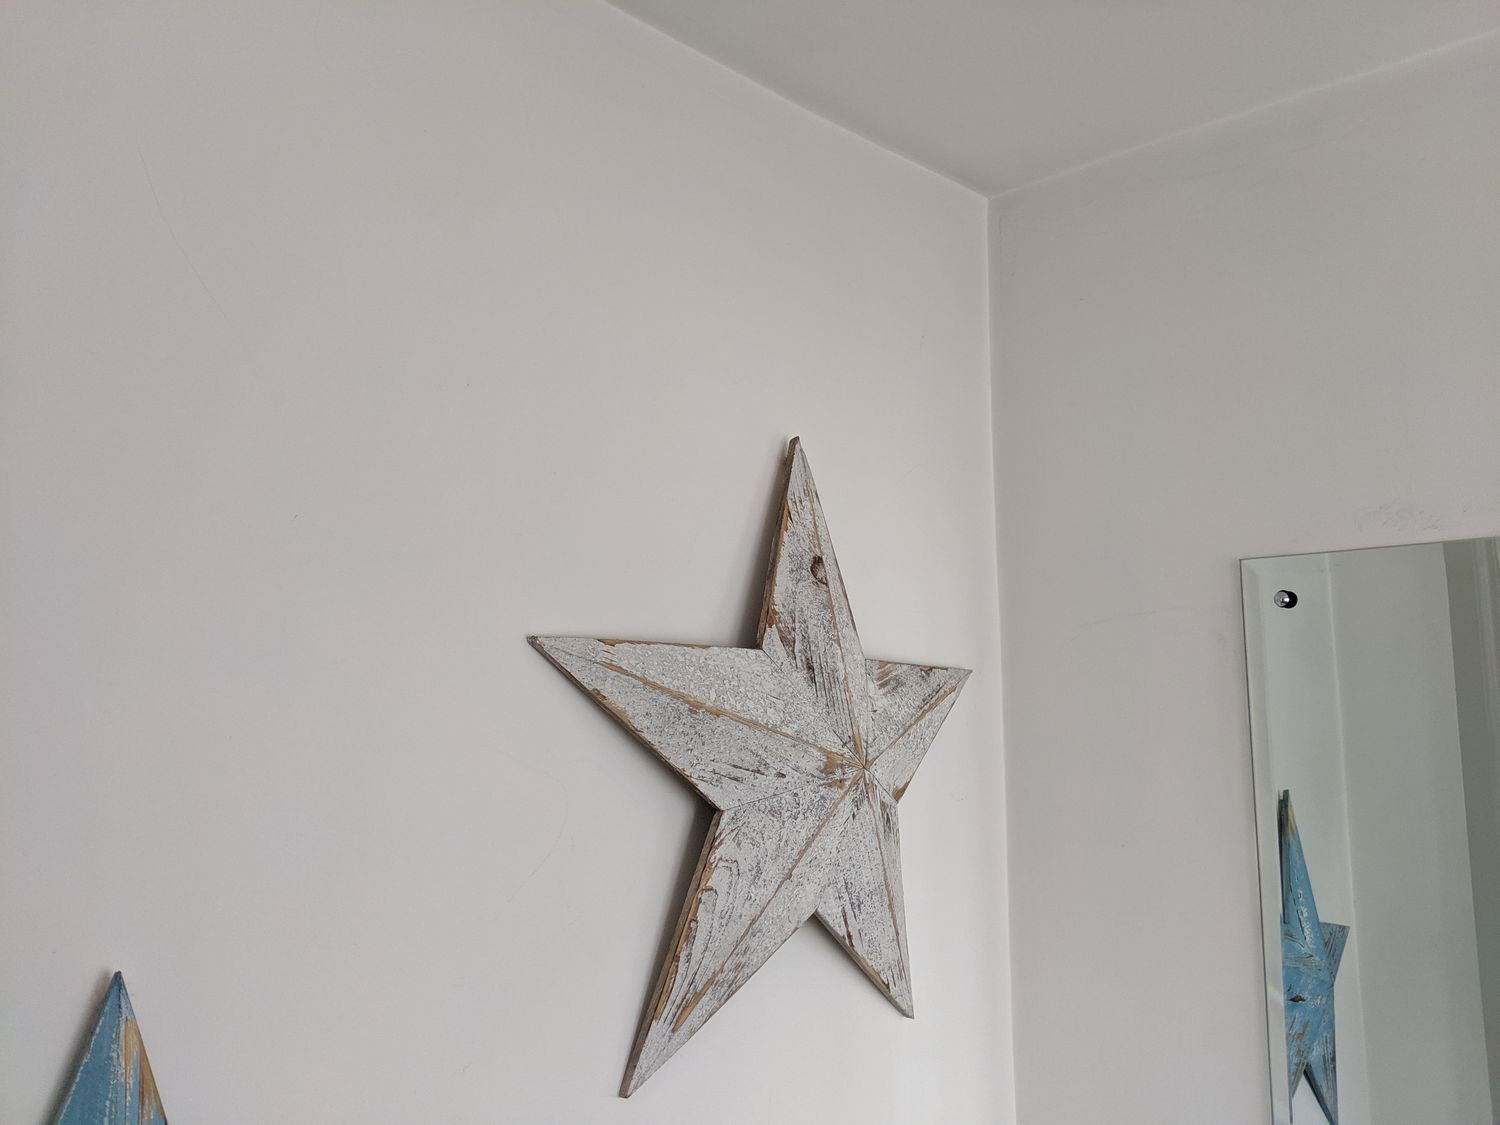 A photo of the area before, which had a plain mirror and a big star on the wall.